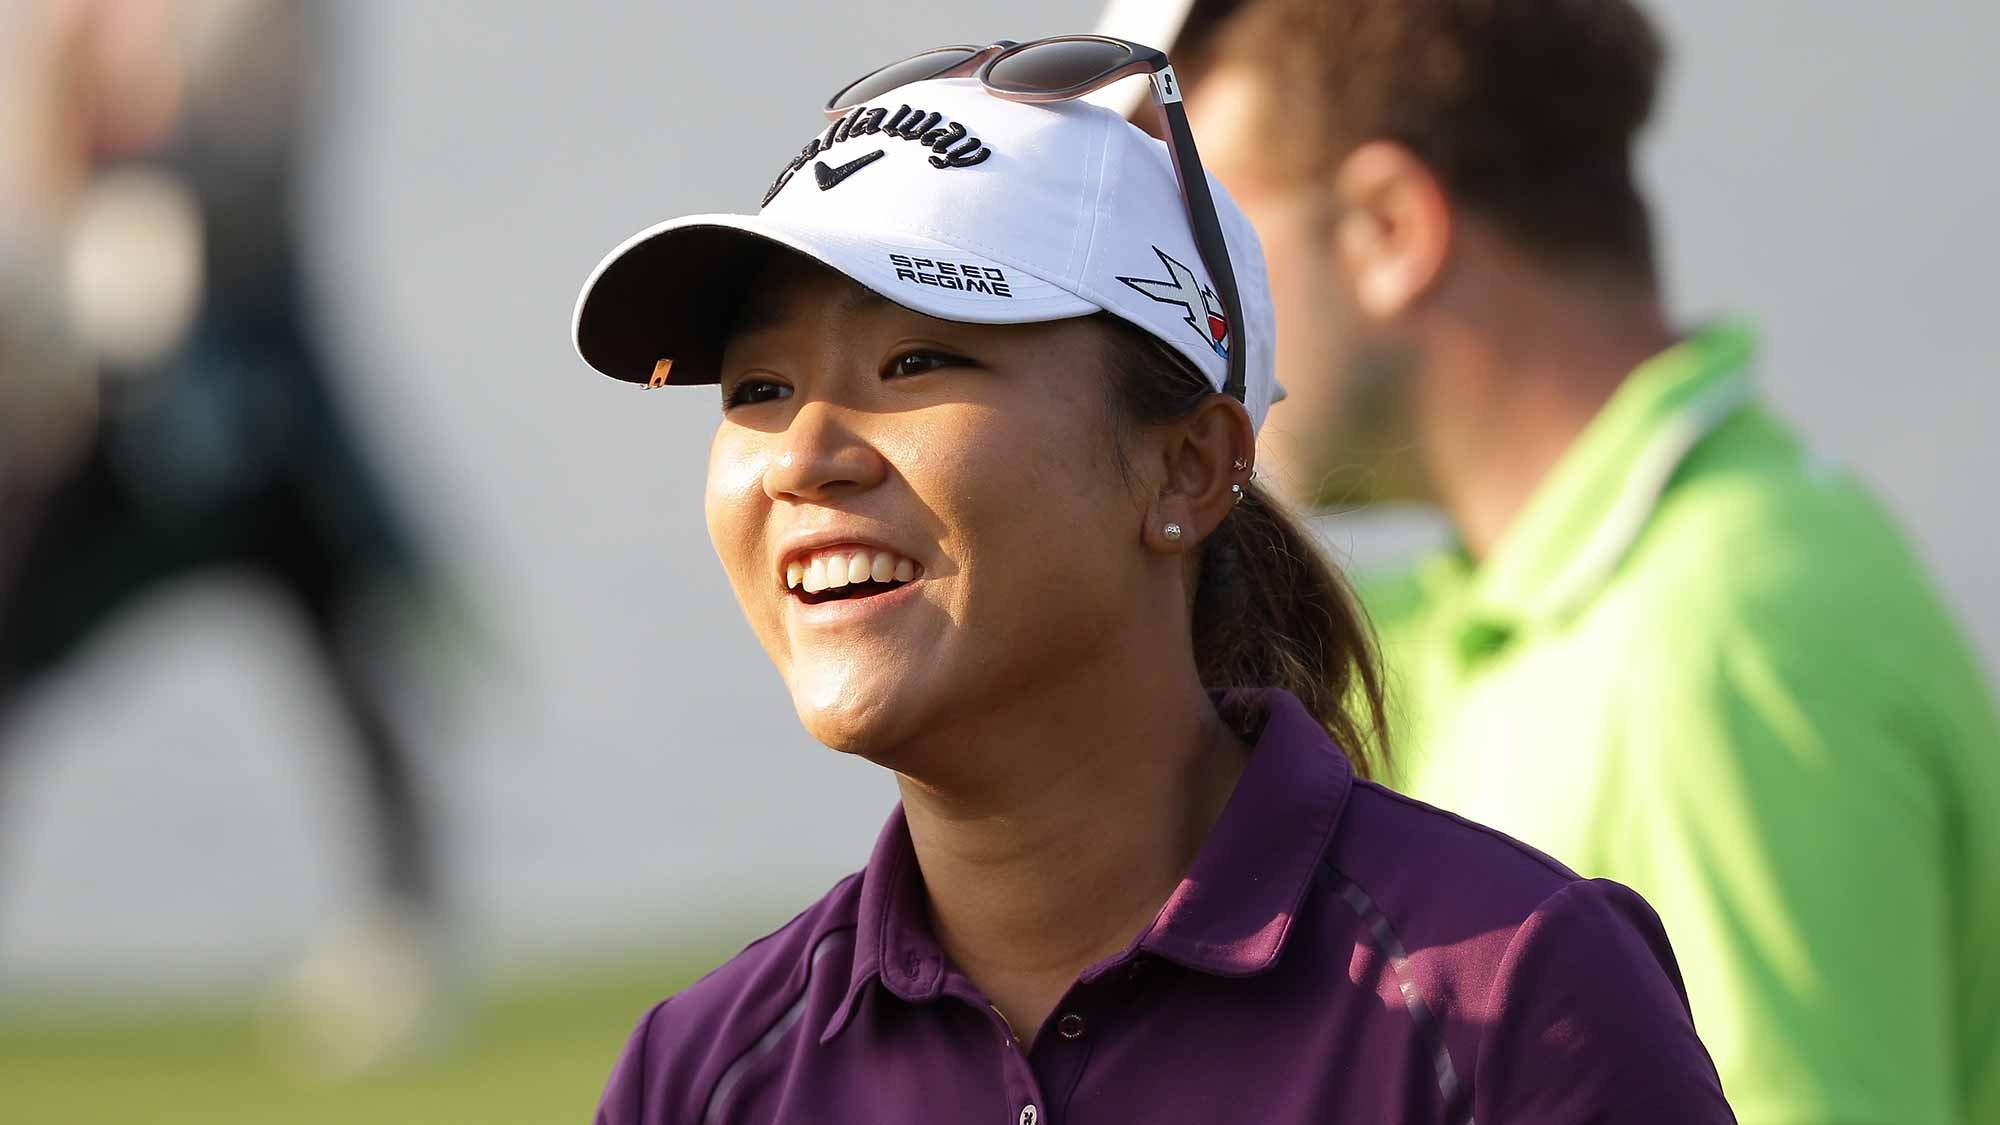 Lydia Ko of New Zealand reacts after a birdie putt on the 18th green during round two of the LPGA KEB Hana Bank Championship